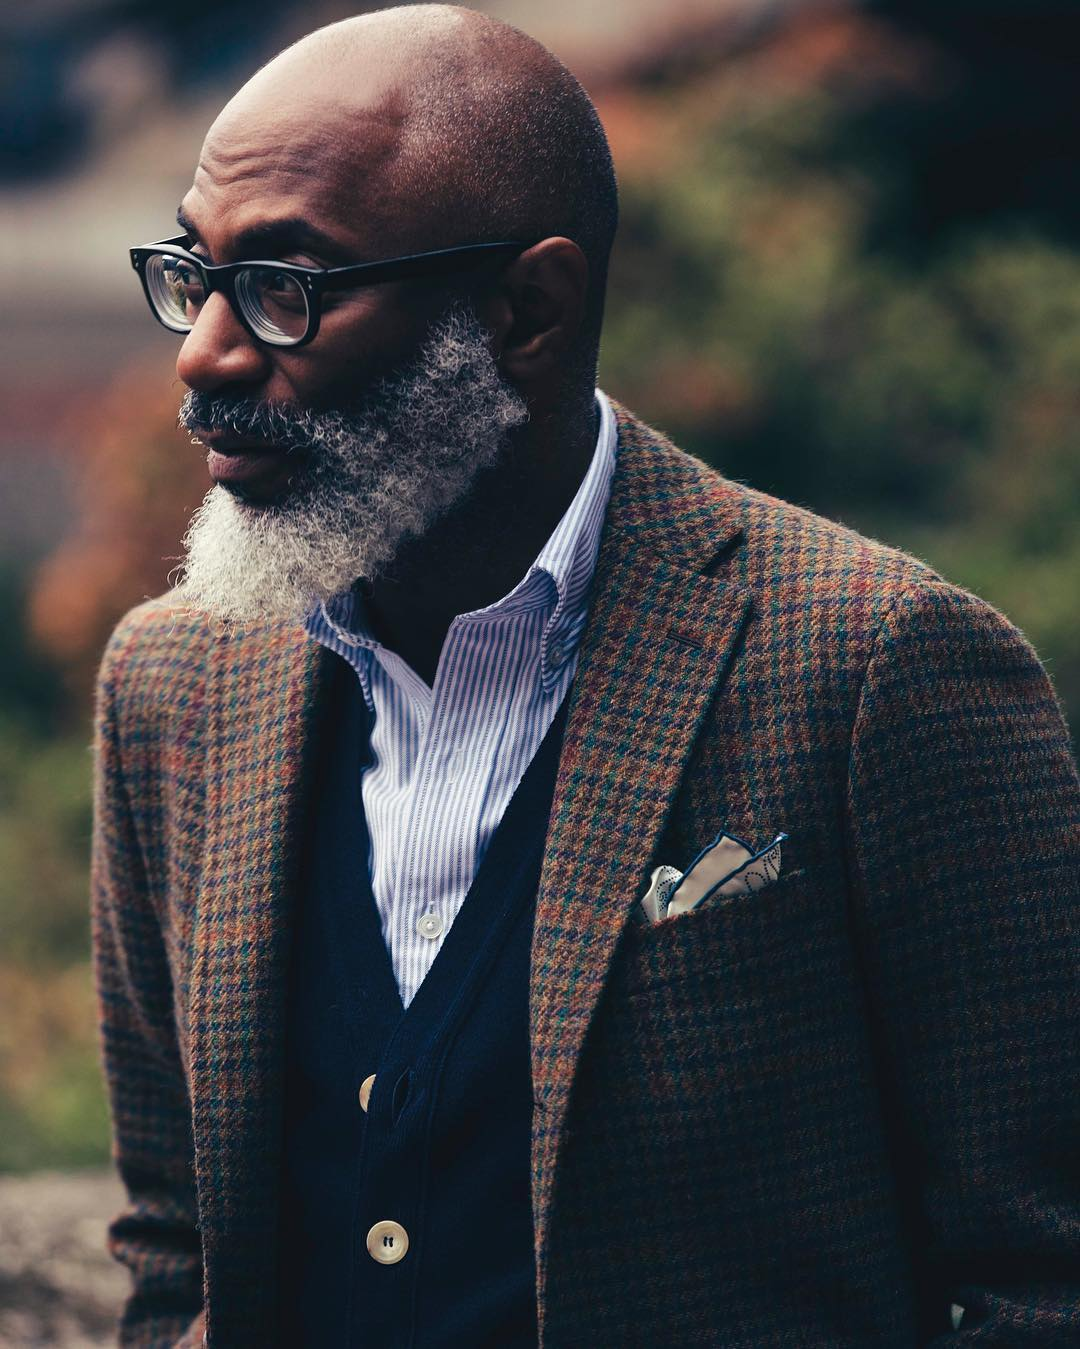 Smart dressed african man with grey beard dark glasses tweed jacket and light shirt side on to viewer